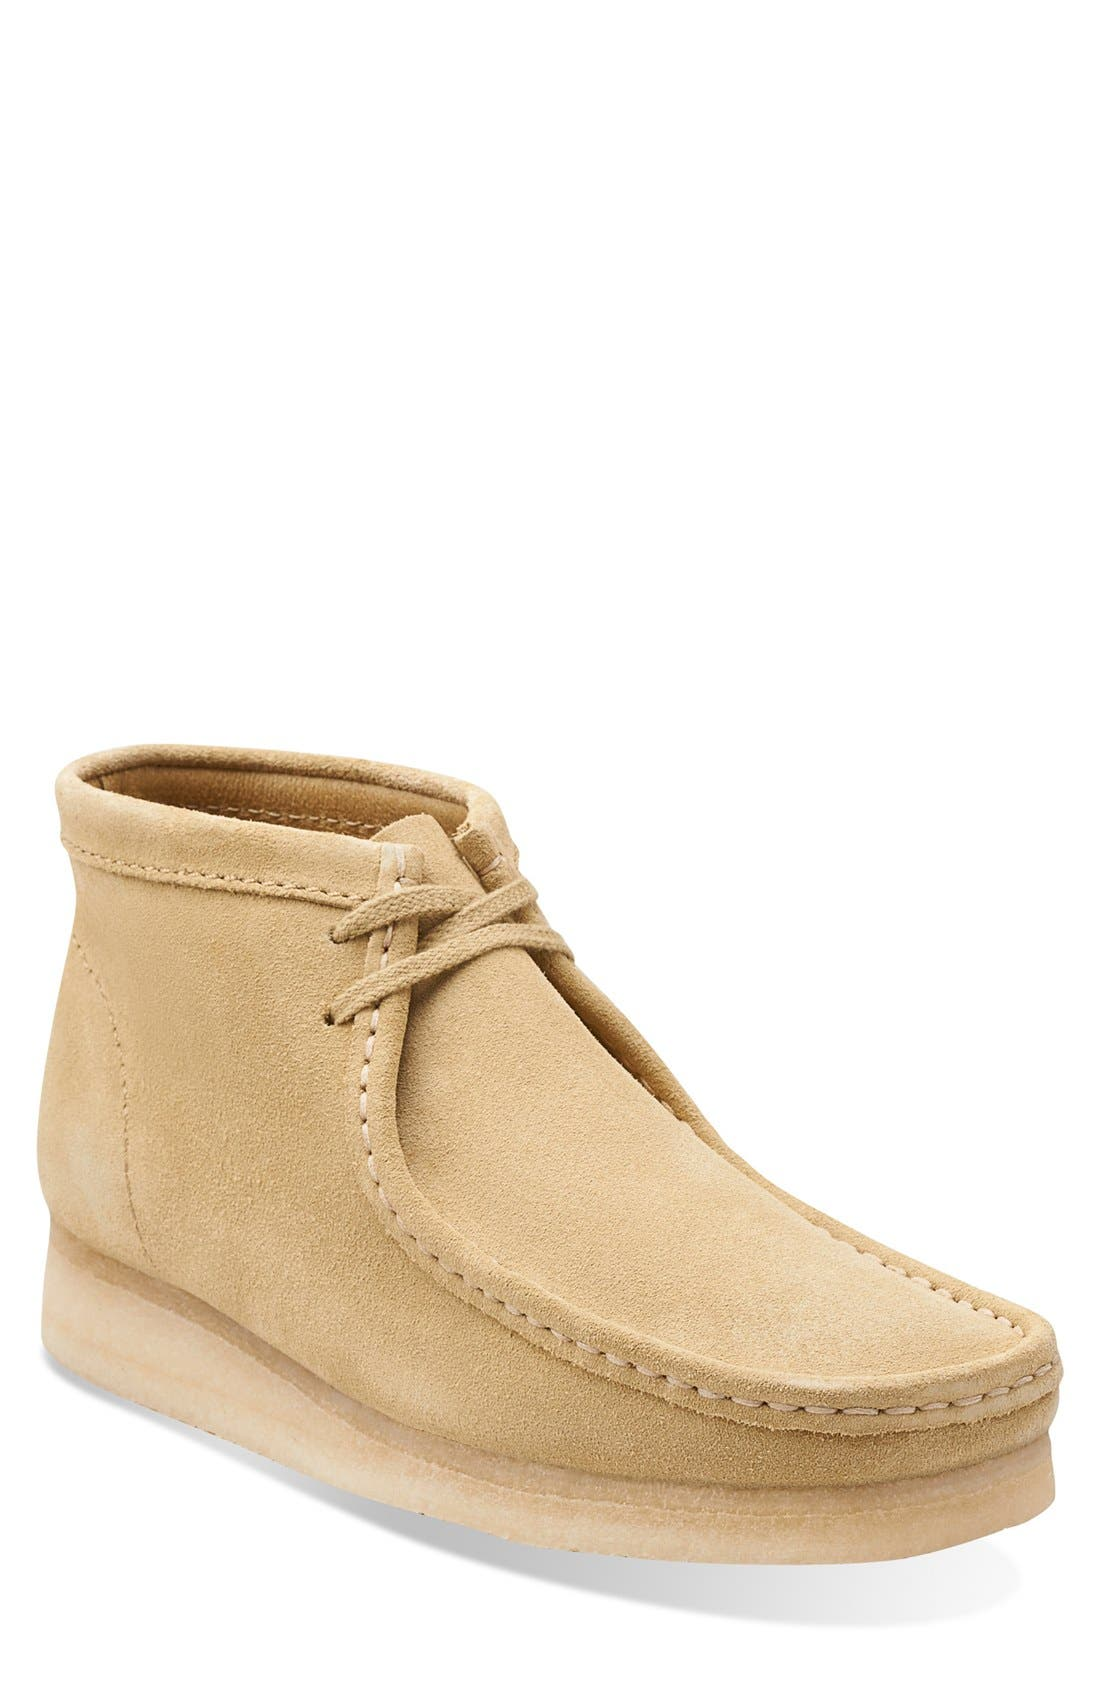 CLARKS® ORIGINALS 'Wallabee' Boot